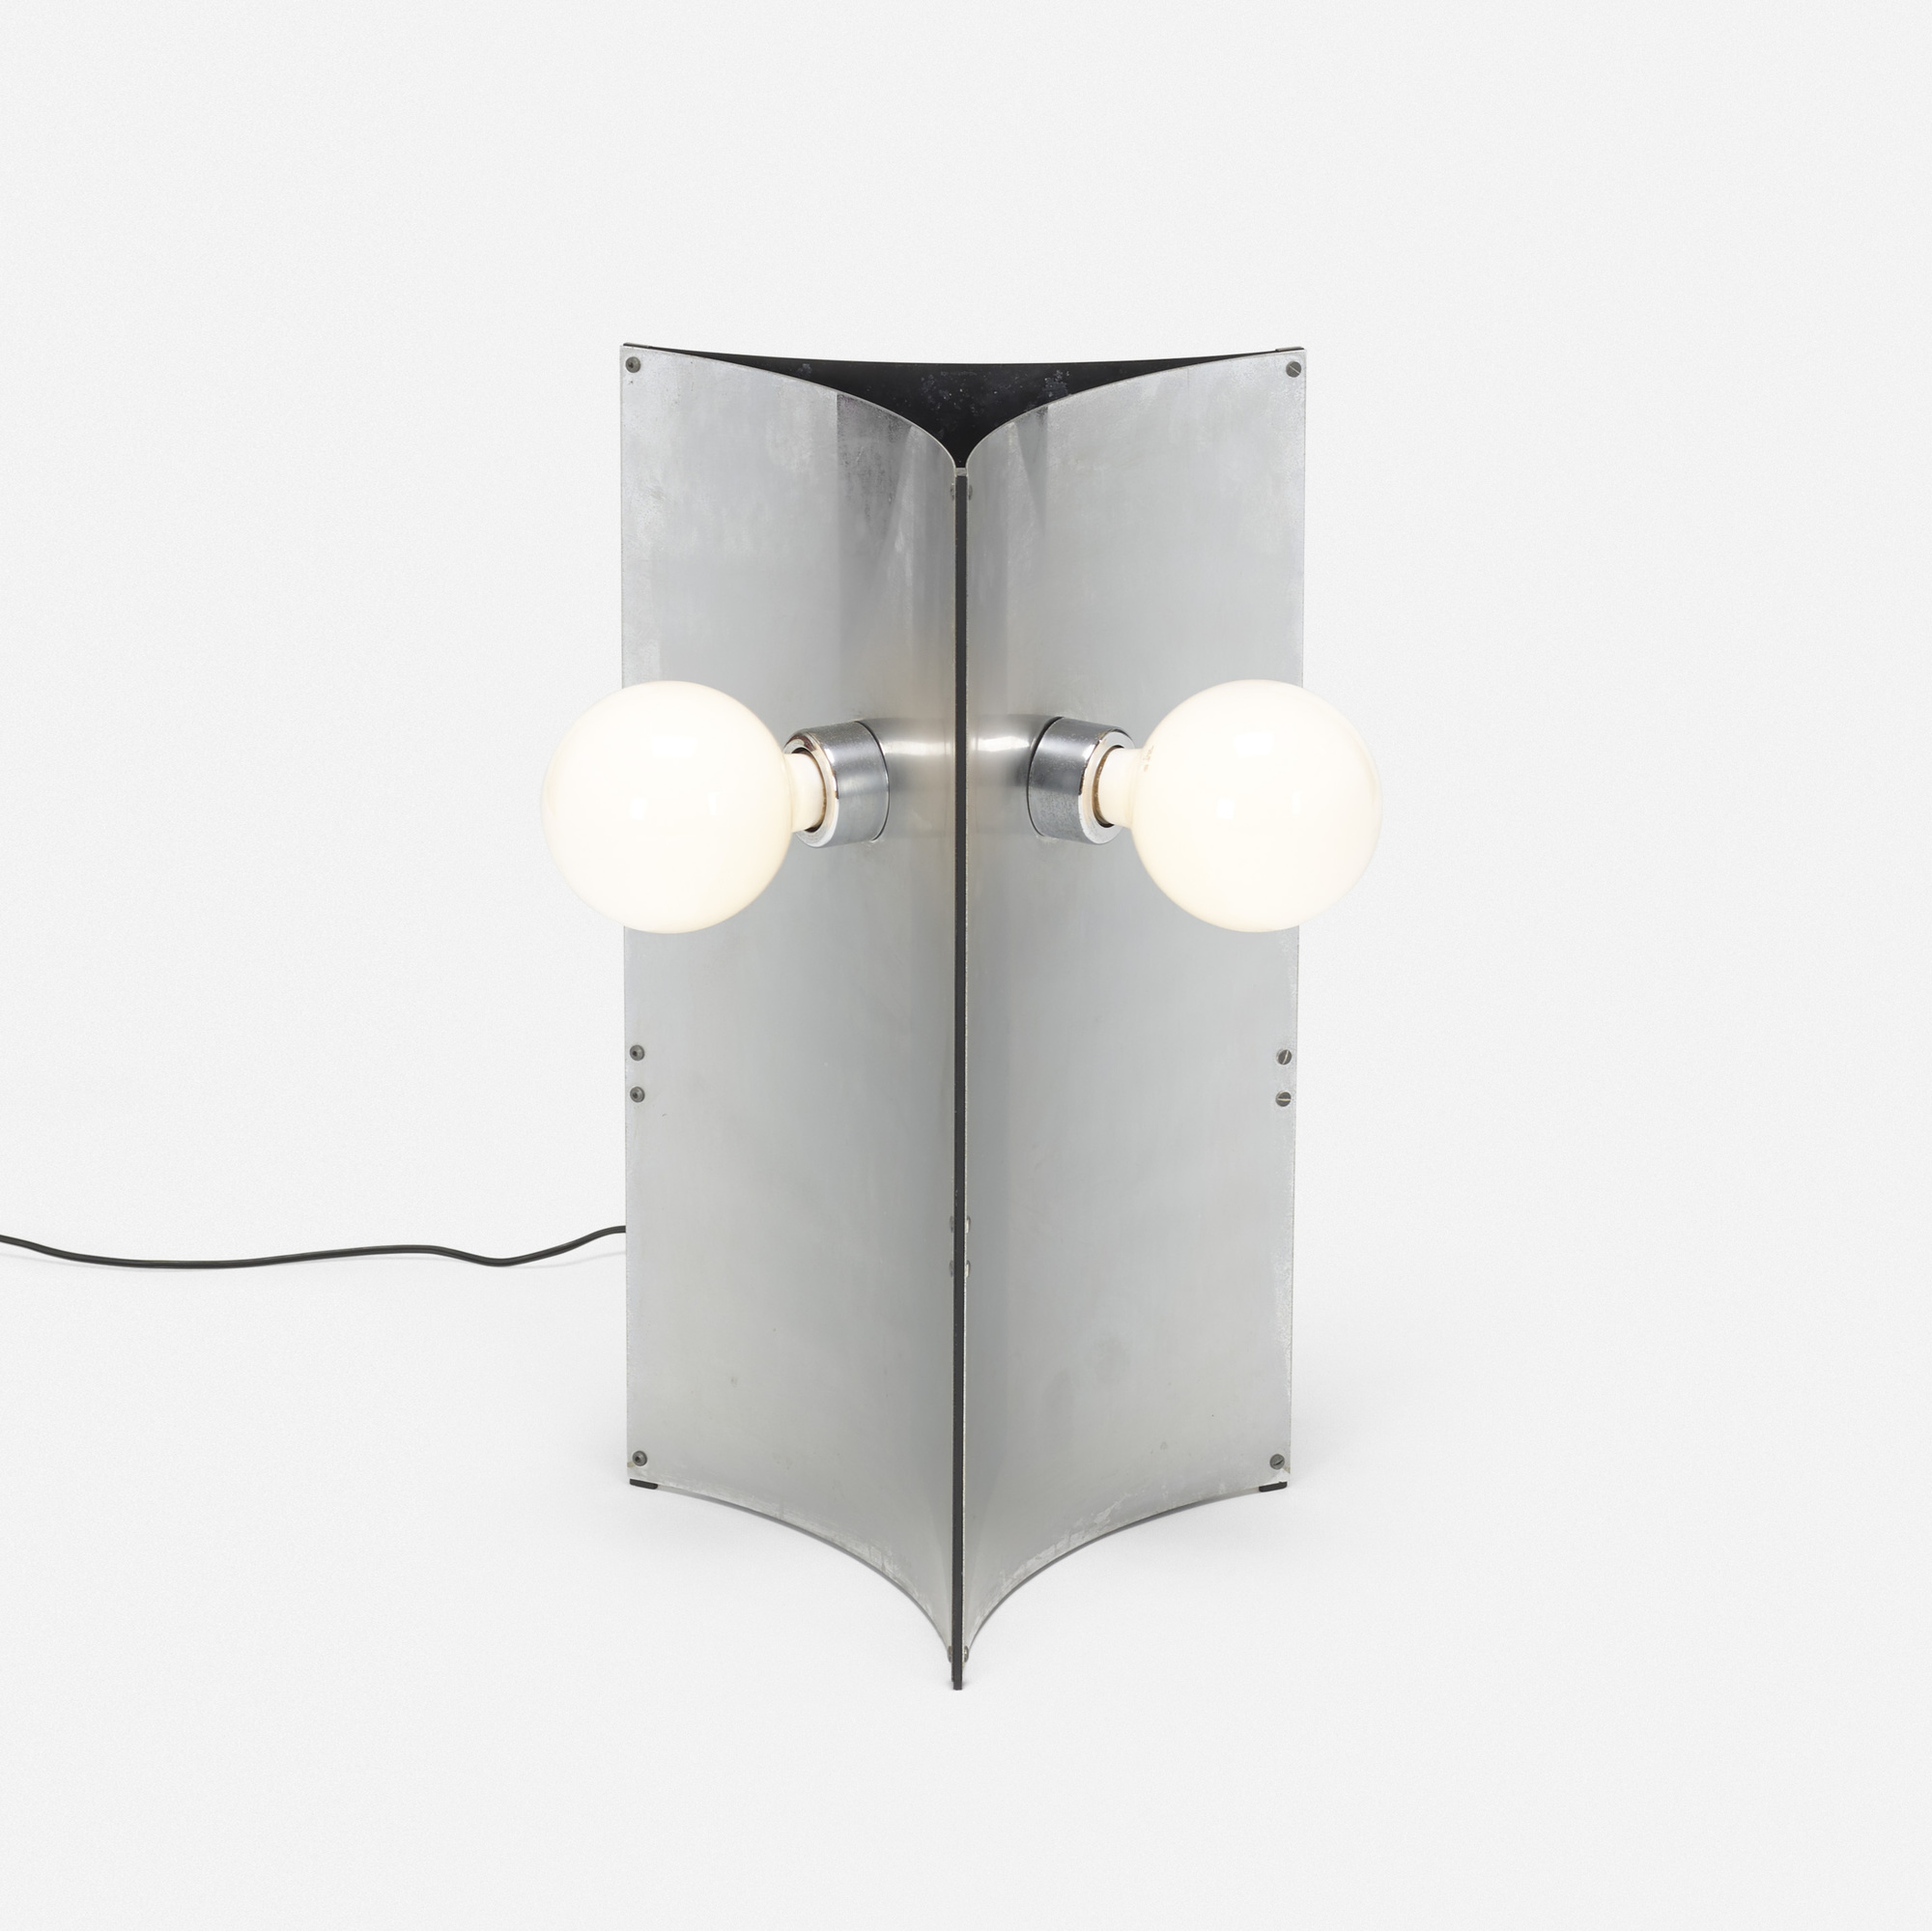 257: Massimo Vignelli and Gino Sarfatti / table lamp, model 526/nt (1 of 2)